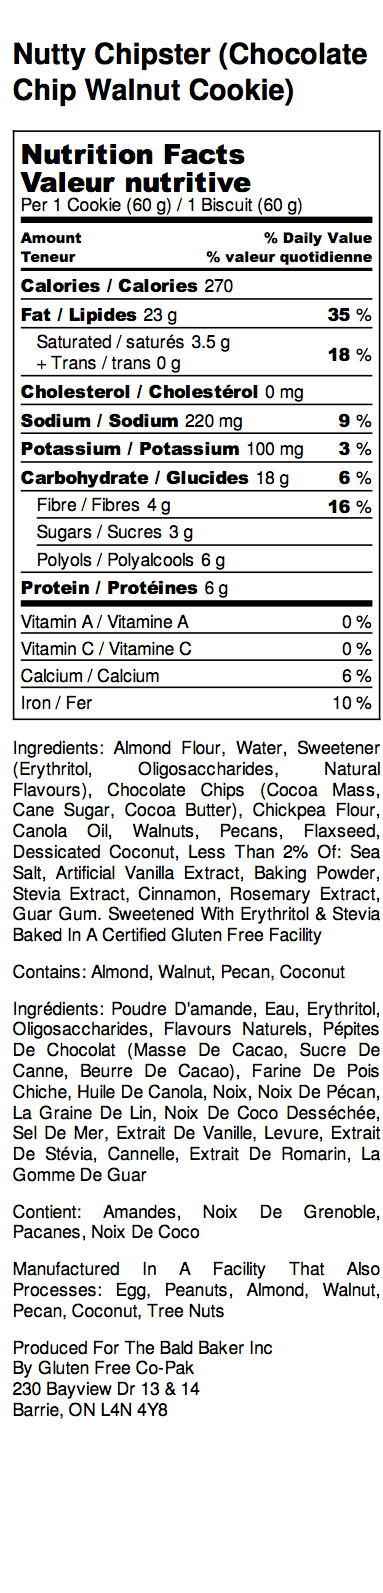 products/Nutty_Chipster_Chocolate_Chip_Walnut_Cookie_-_Nutrition_Label_3.png